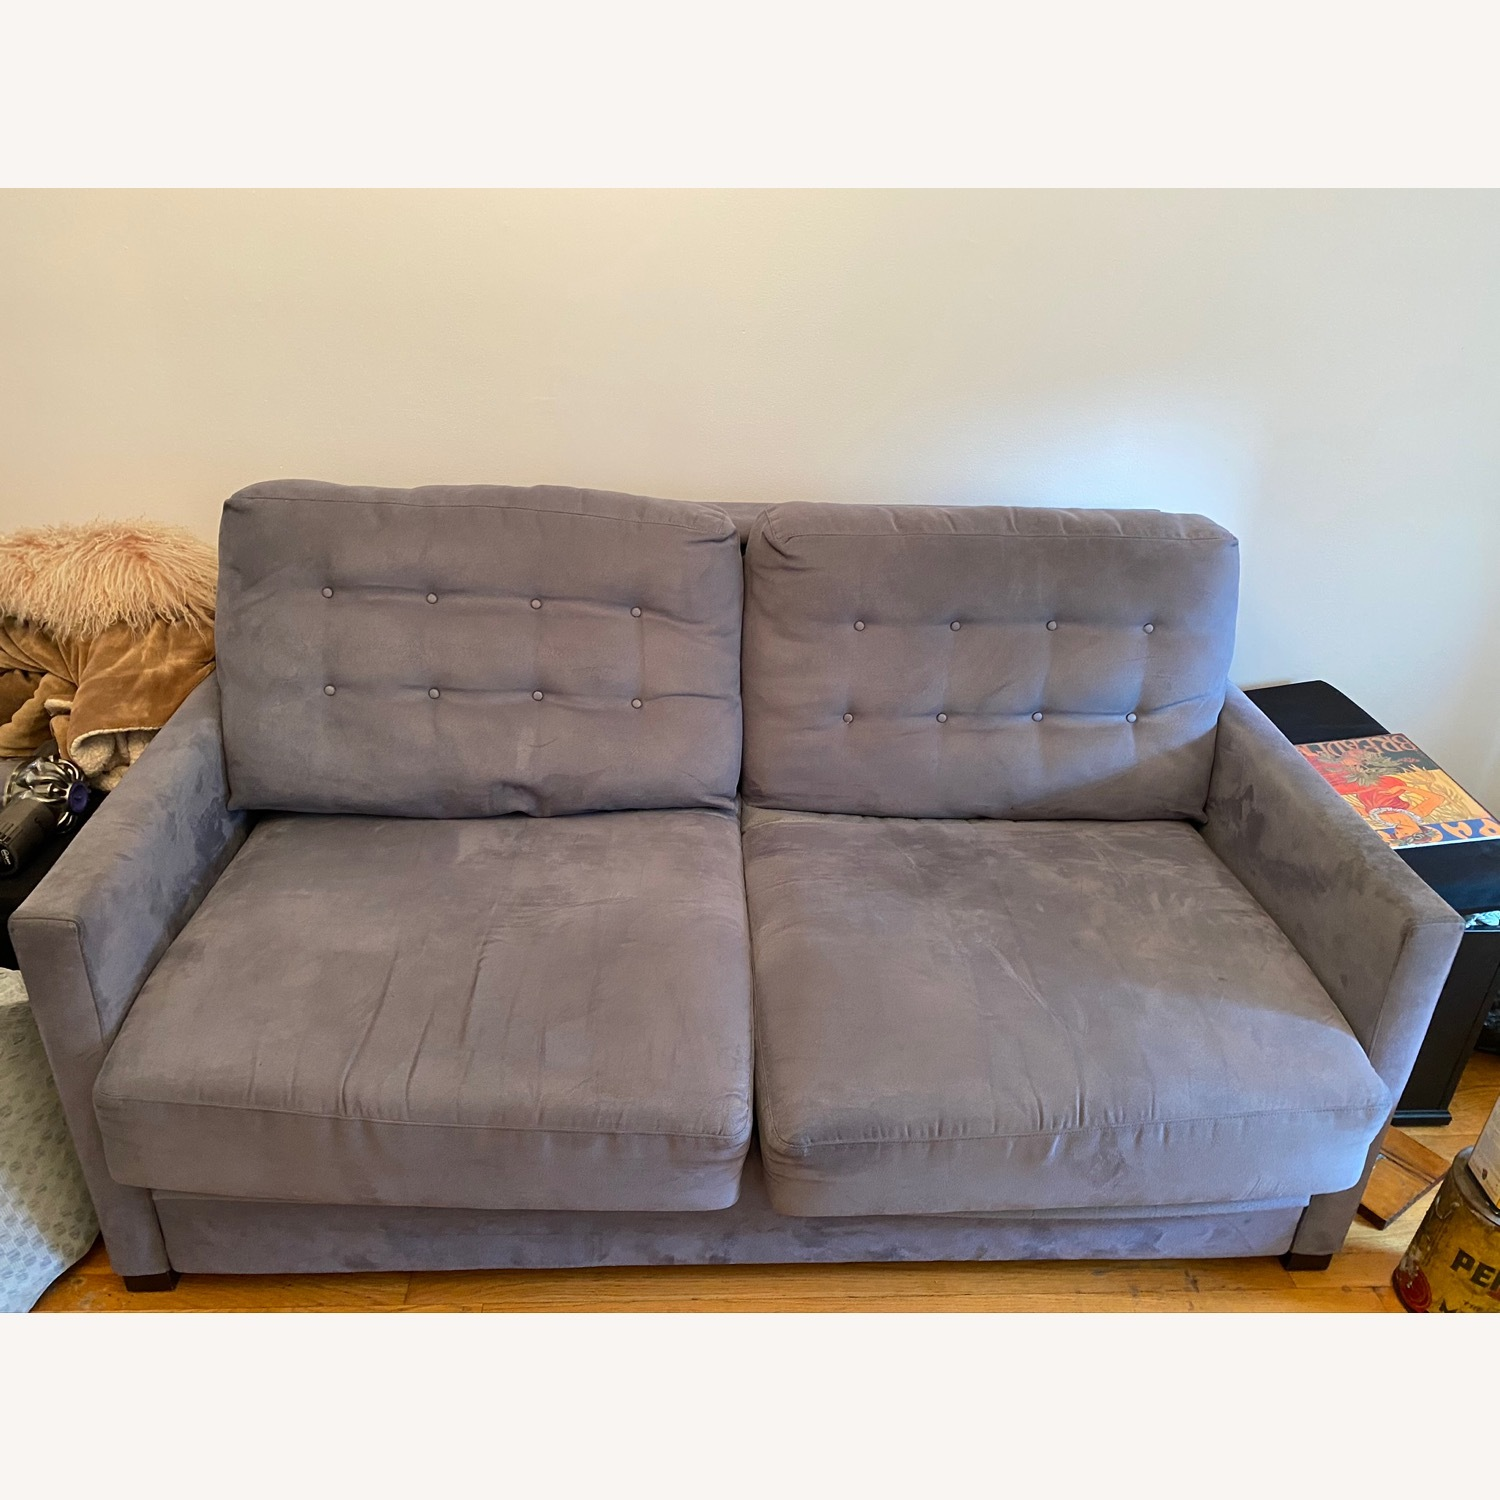 Raymour & Flanigan Pull-Out Memory Foam Sofa - image-3